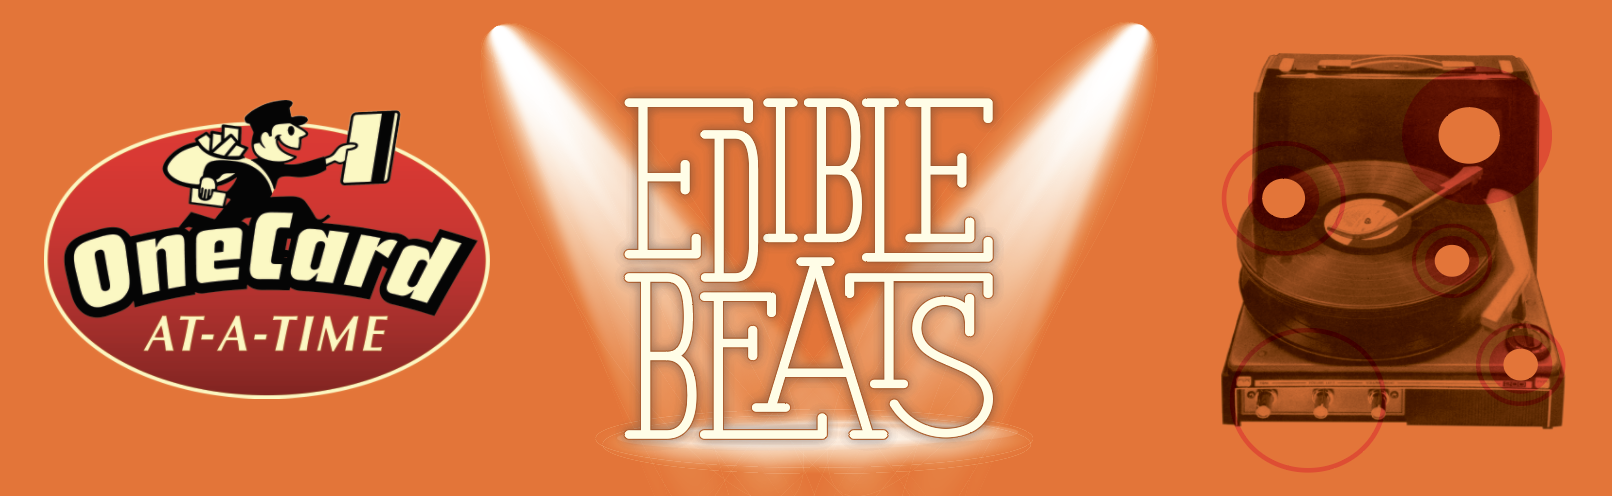 Spotlight Edible Beats